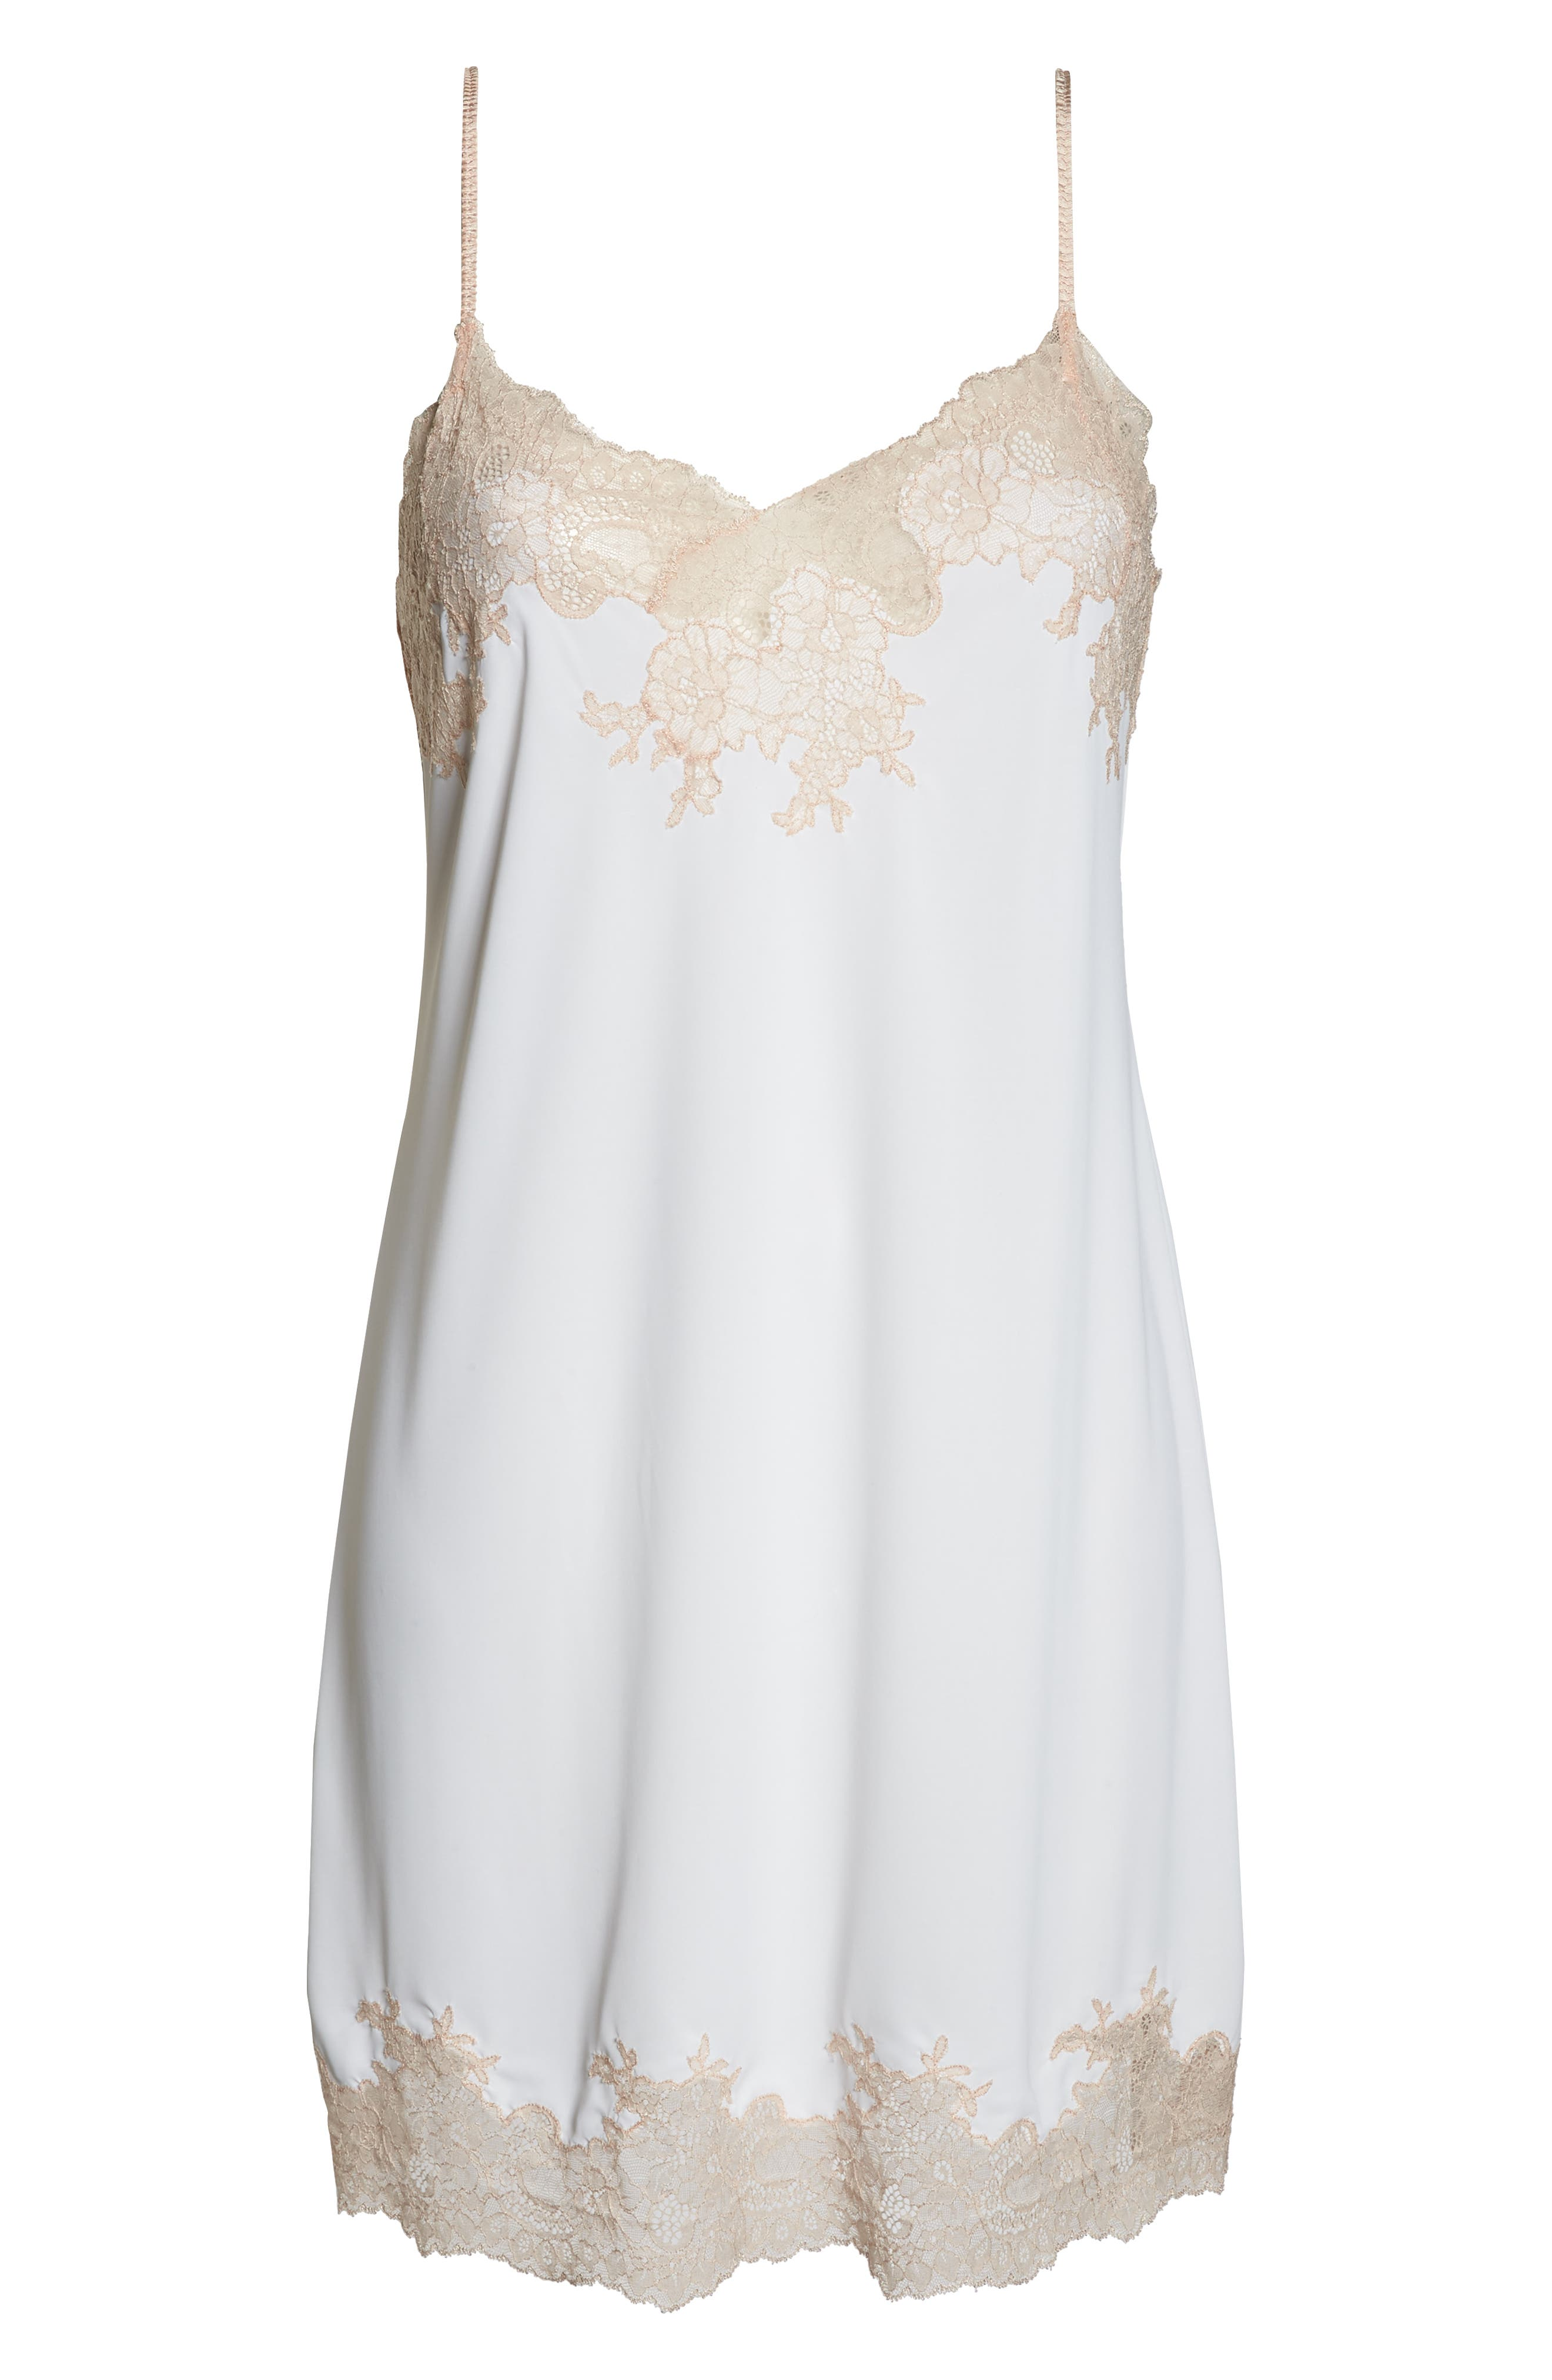 Enchant Chemise,                             Alternate thumbnail 6, color,                             IVORY/ CAMEO ROSE LACE